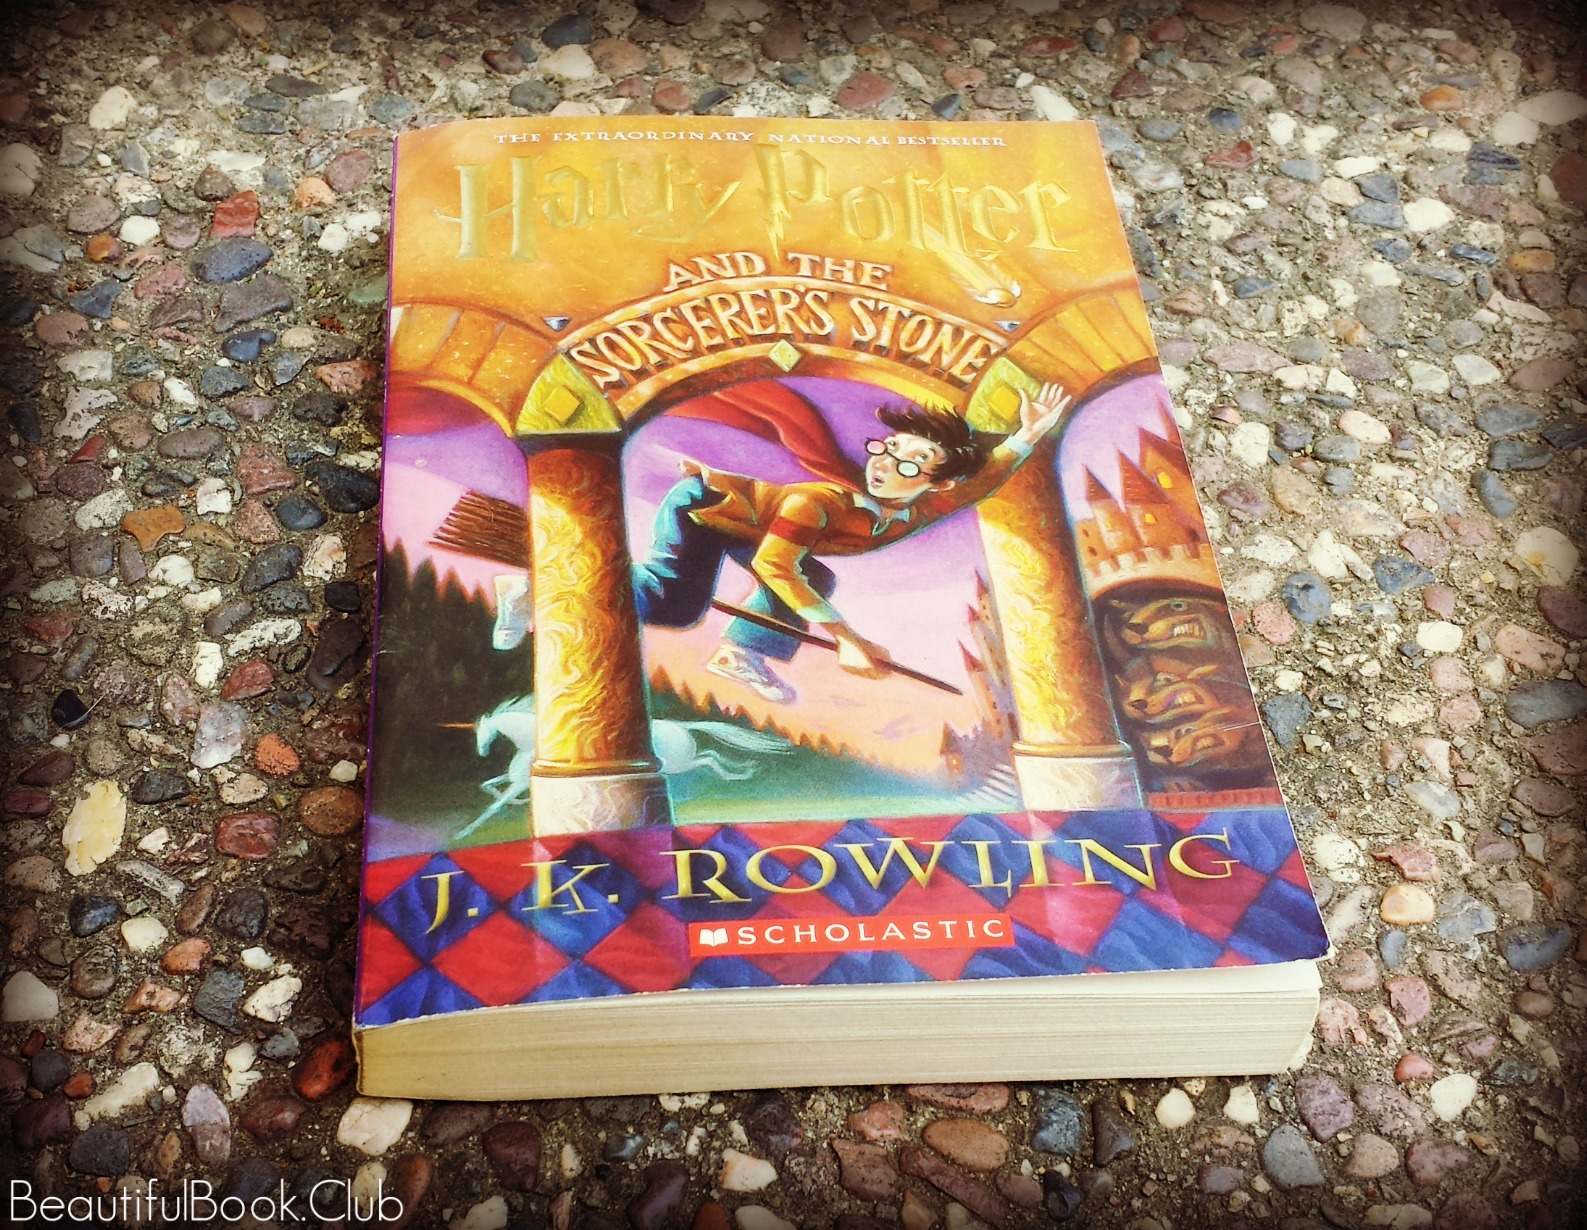 Harry Potter and the Sorcerer's Stone by J.K. Rowling front cover